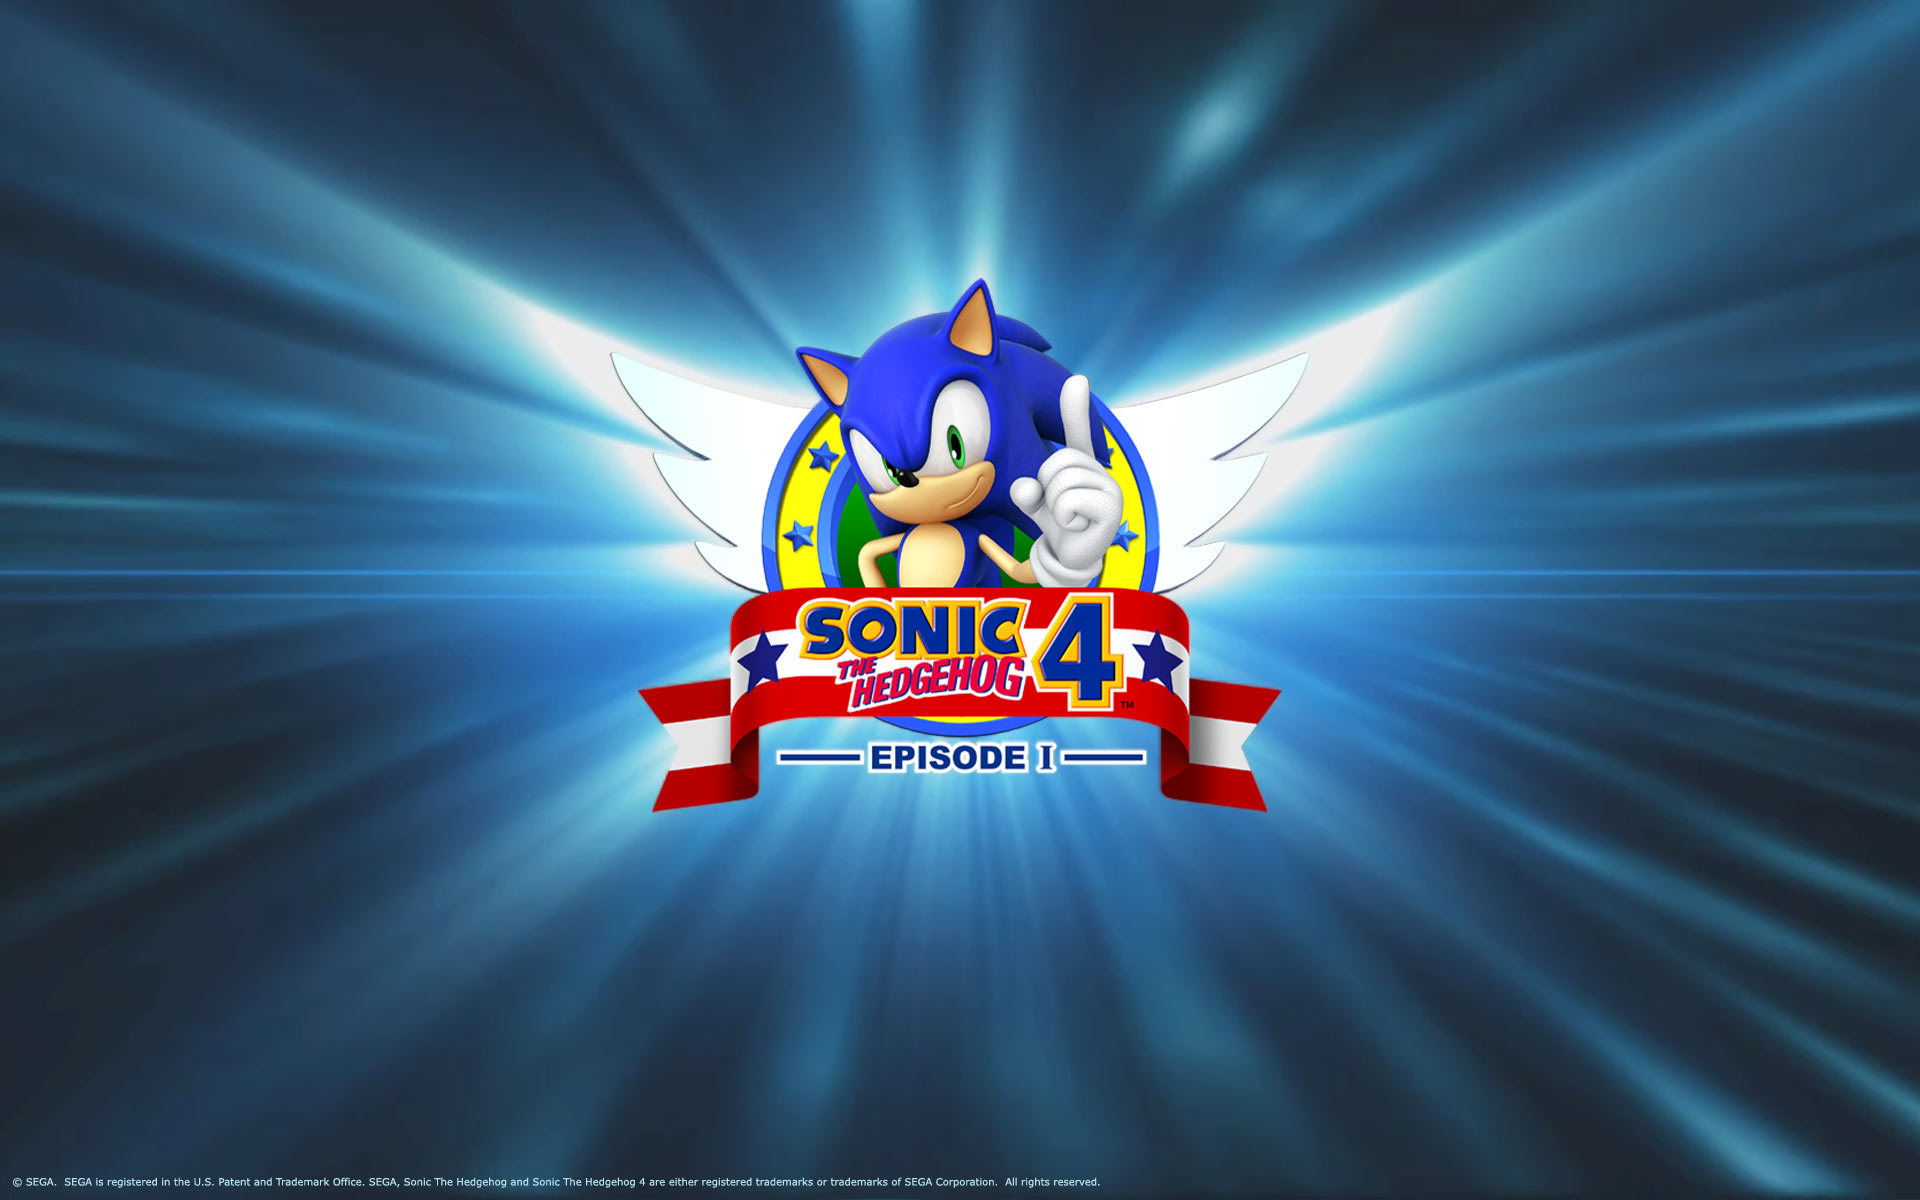 Sonic The hedgehog video HD Wallpaper